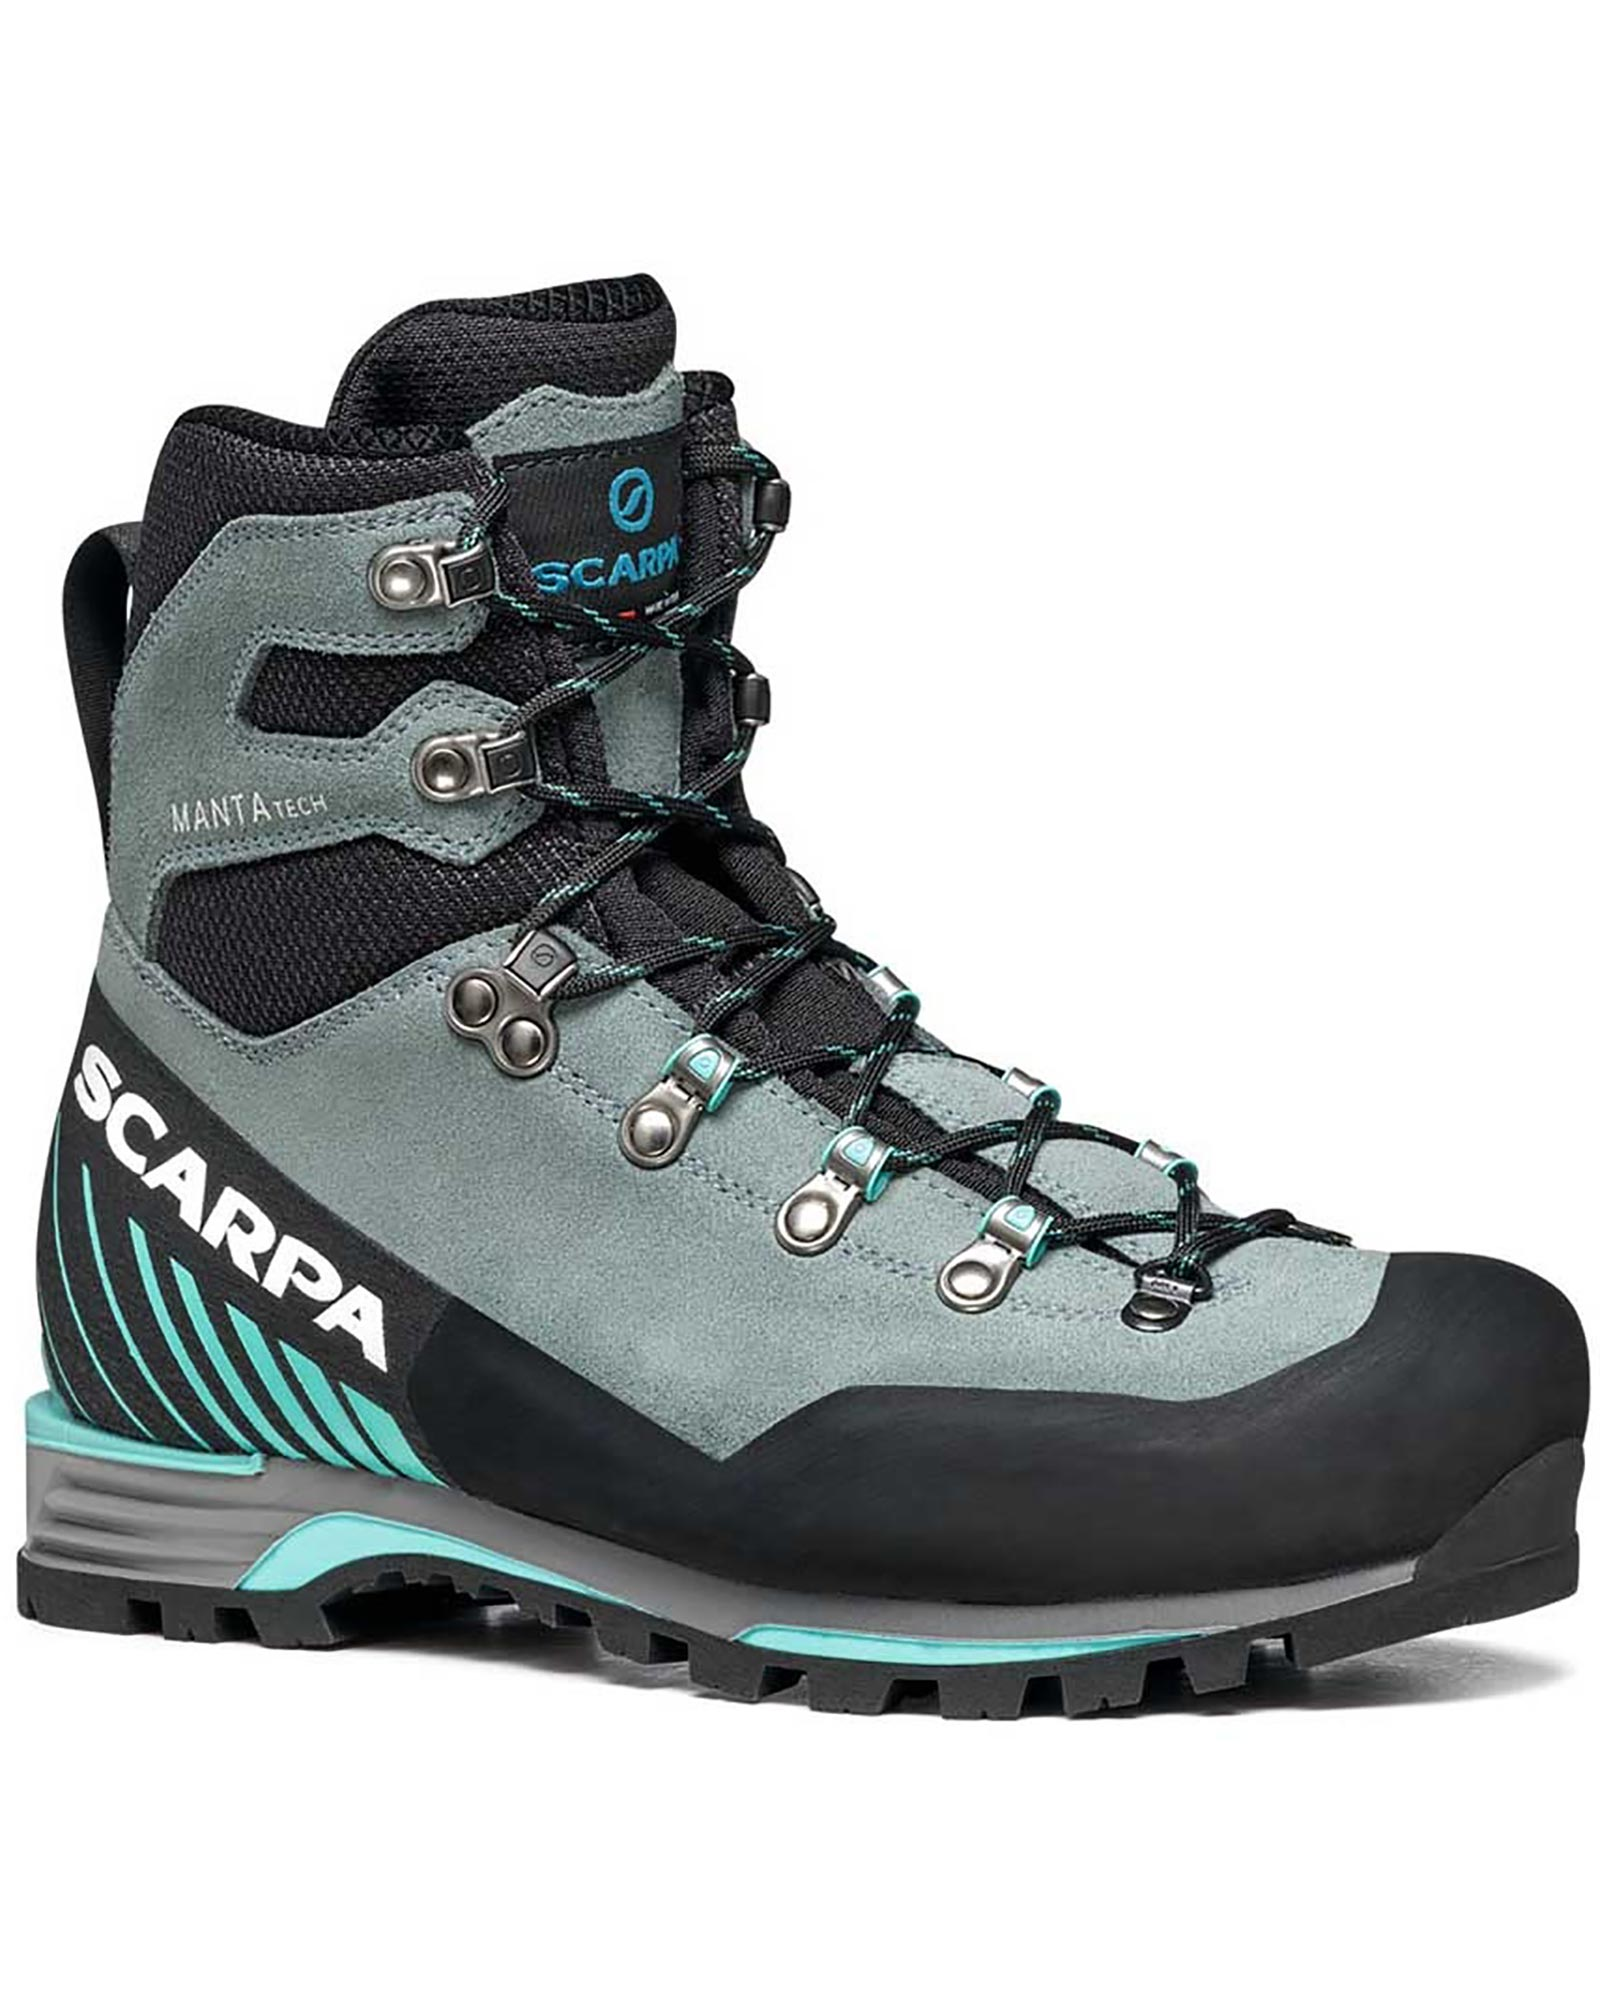 Scarpa Women's Manta Tech GORE-TEX Mountaineering Boots 0